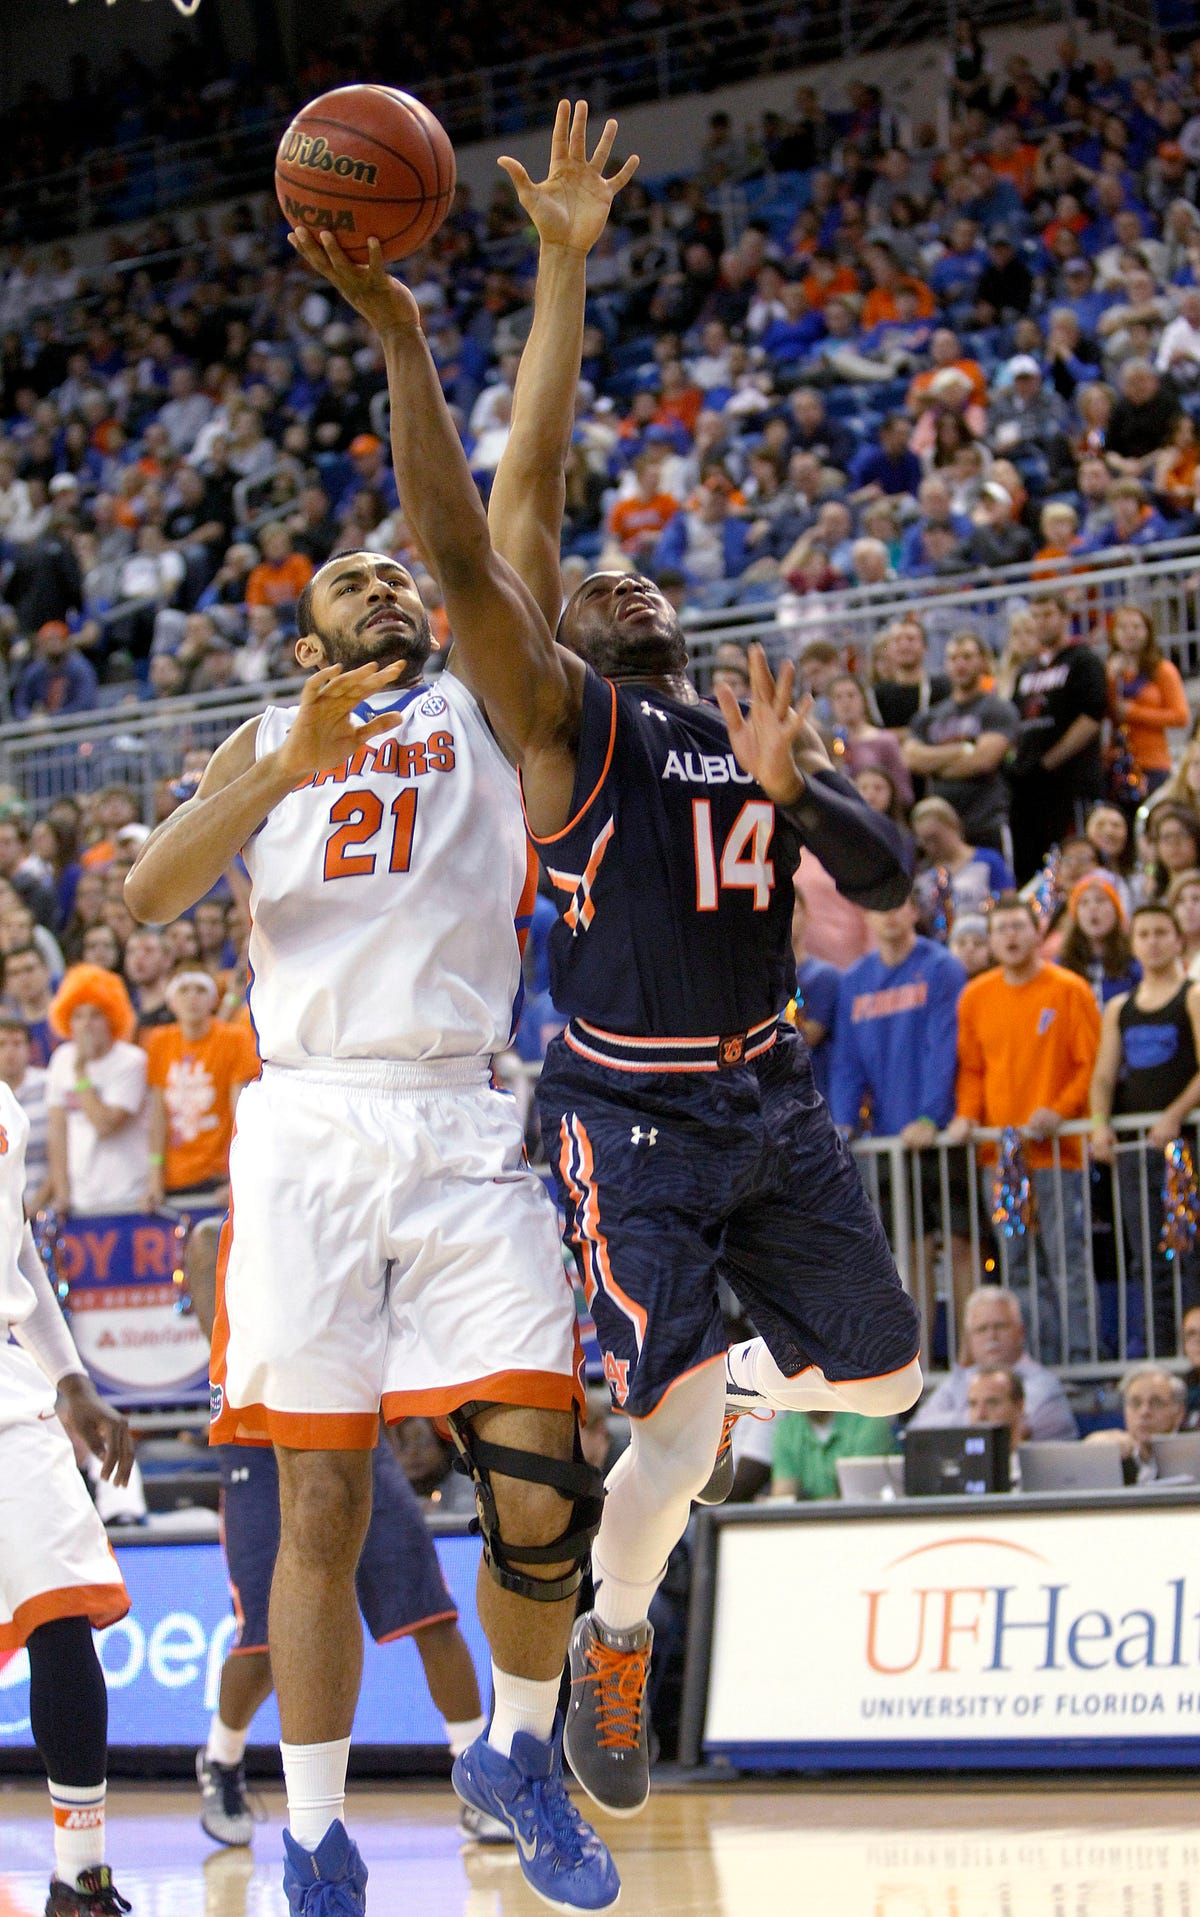 Florida beats Auburn 75-55 for 24th straight win in SEC play